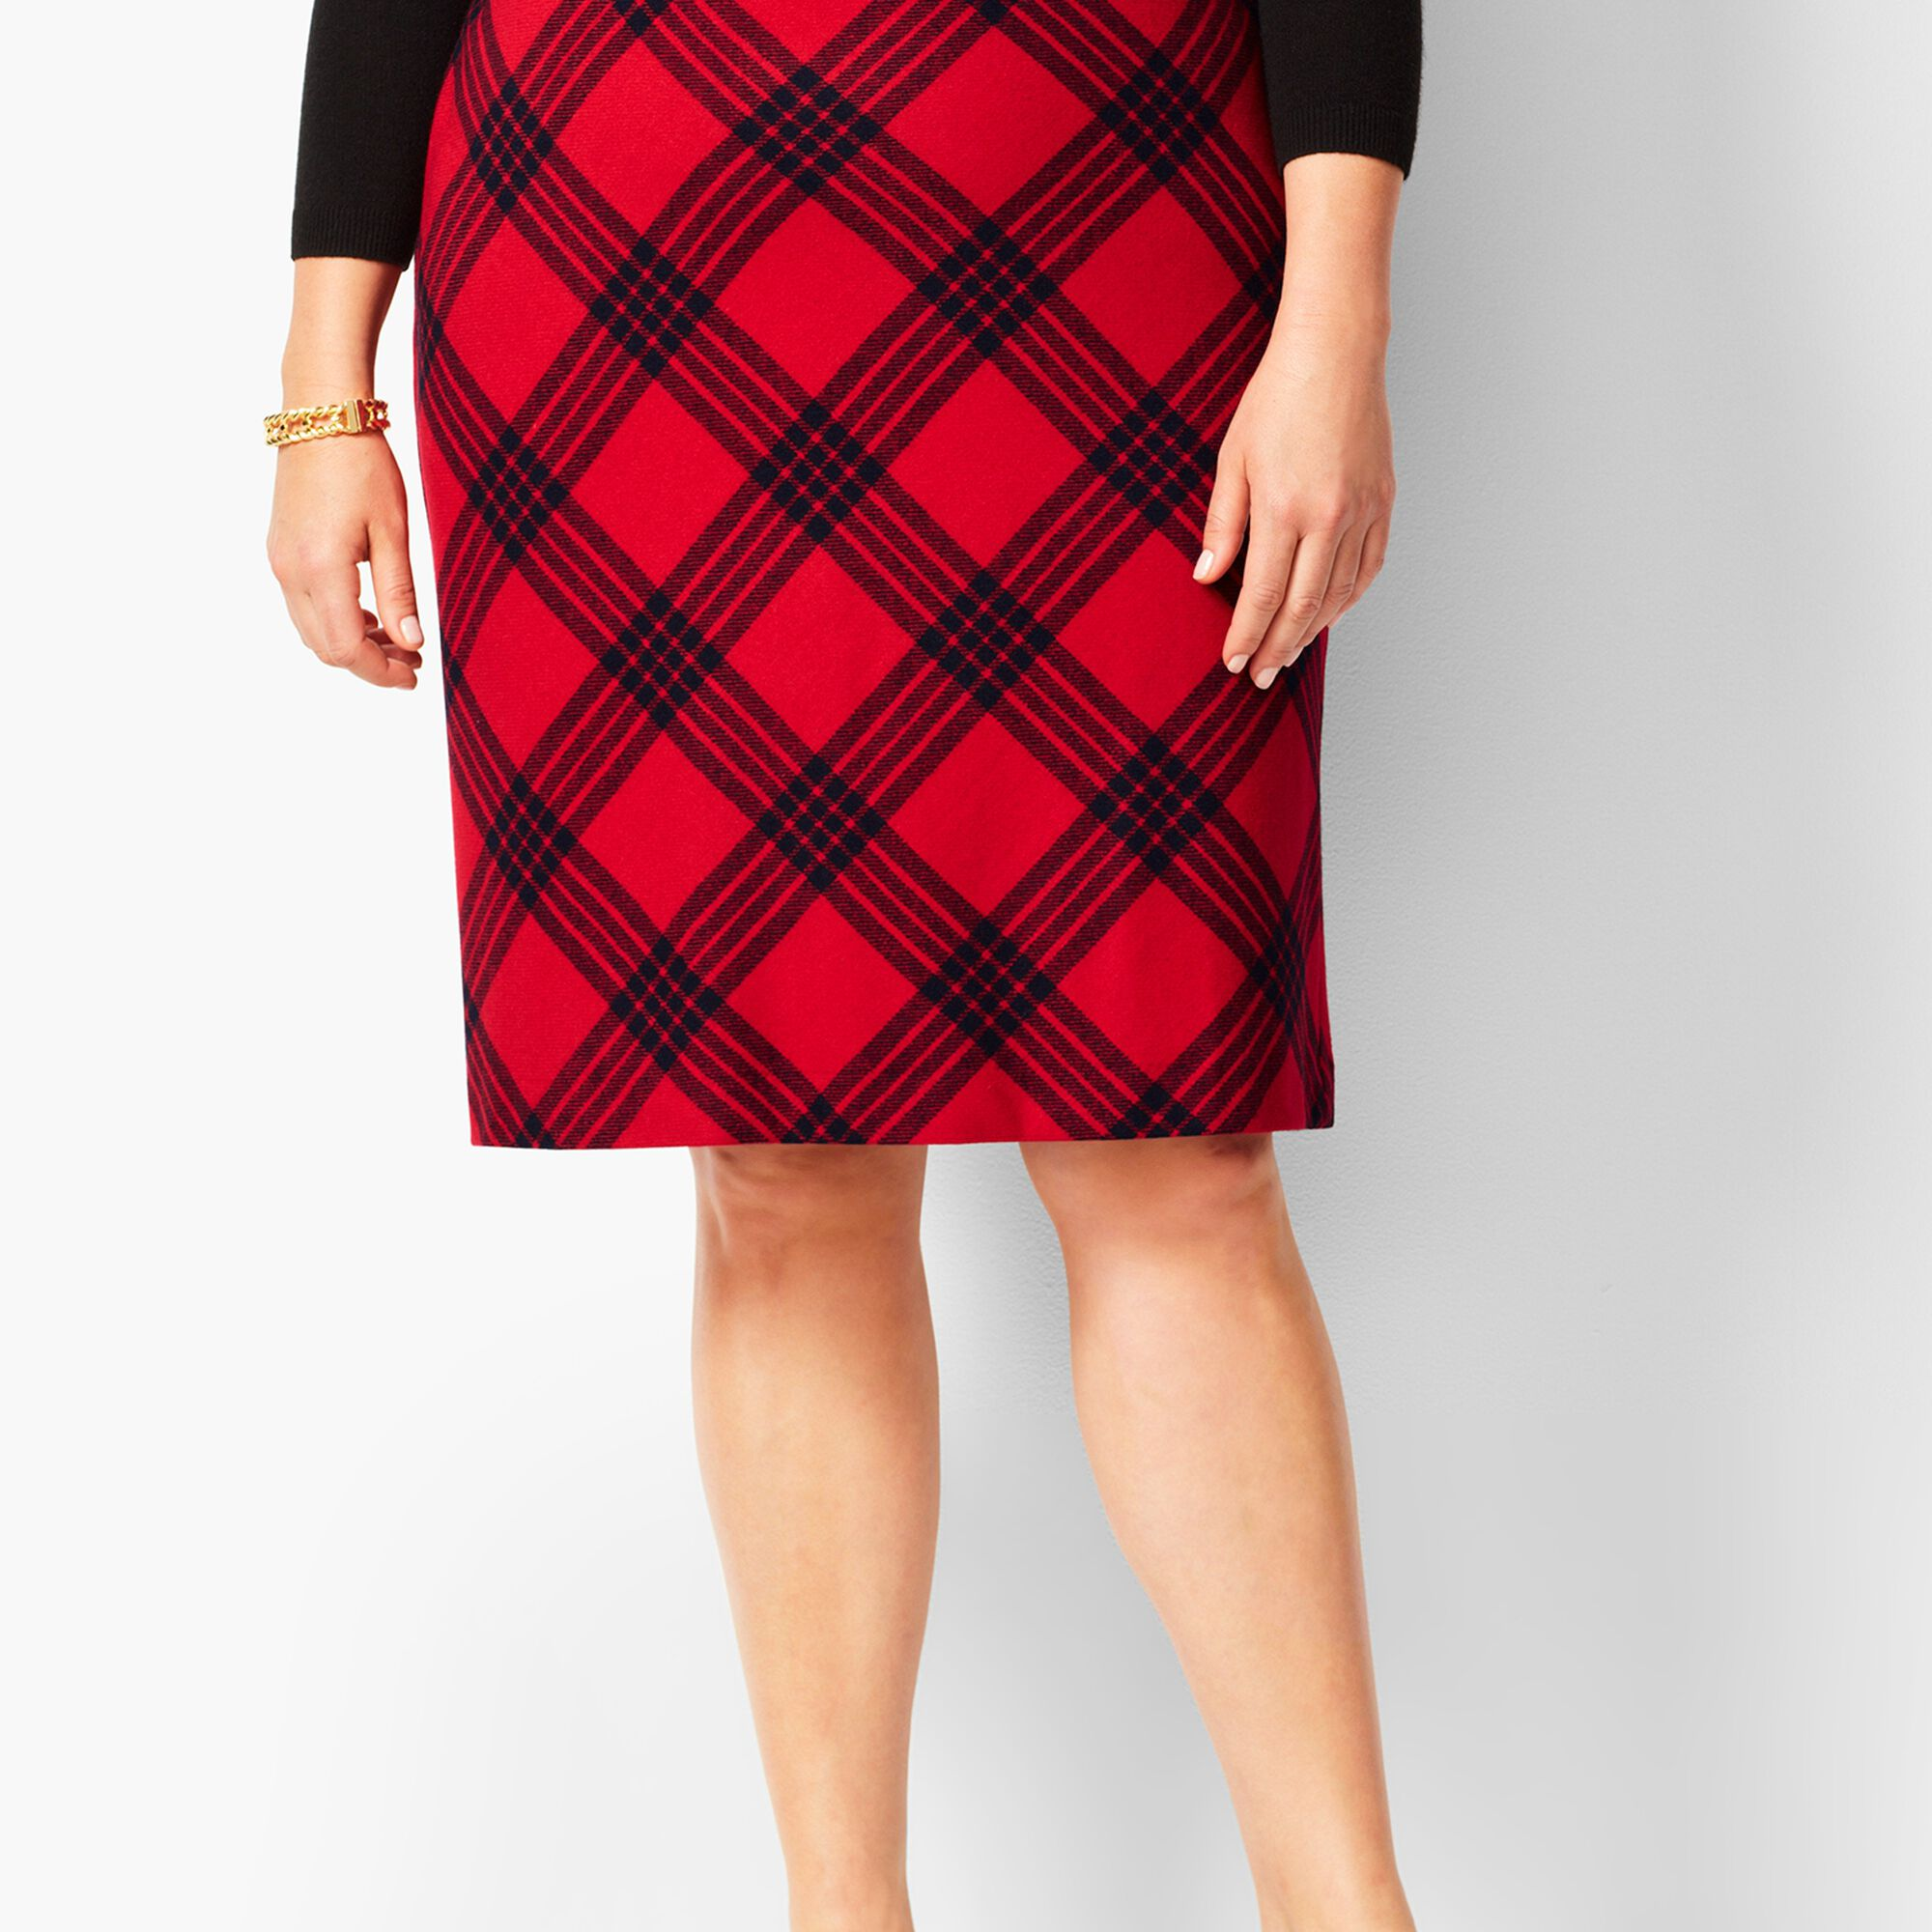 ea6d696dcb Images. Twill A-Line Skirt - Country Plaid